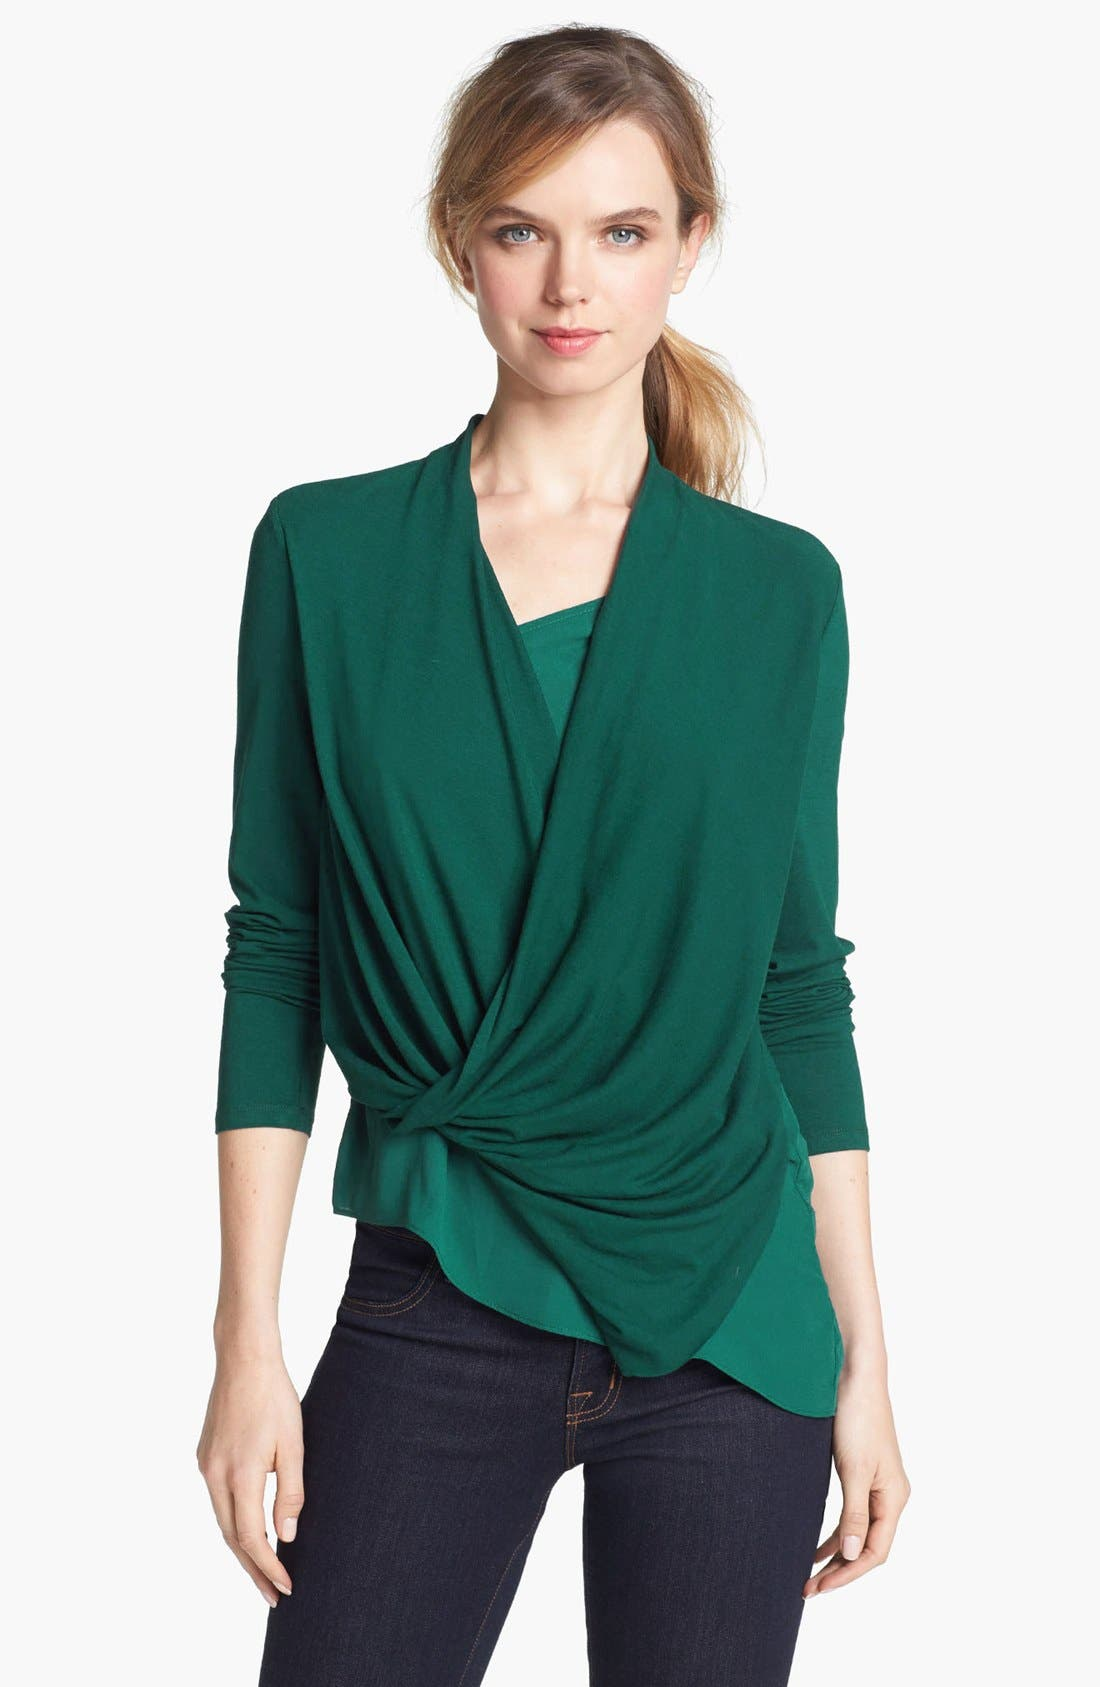 Alternate Image 1 Selected - Vince Camuto Mixed Media Wrap Top (Online Exclusive)